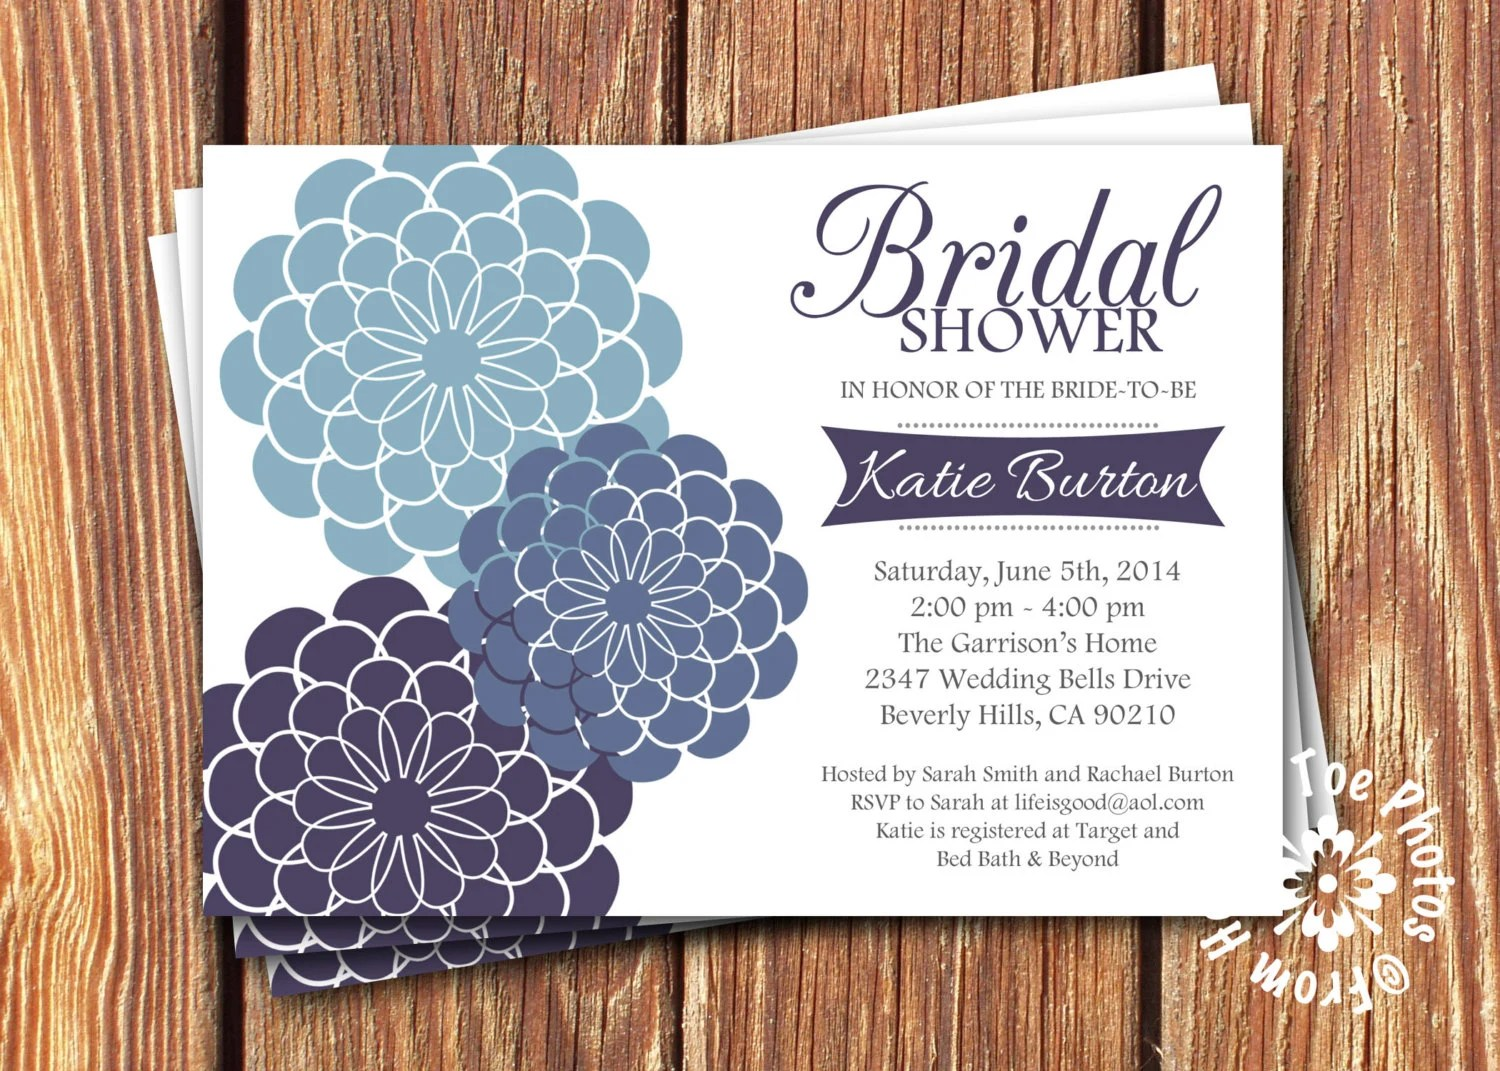 Bridal Shower Invitations Sams Club